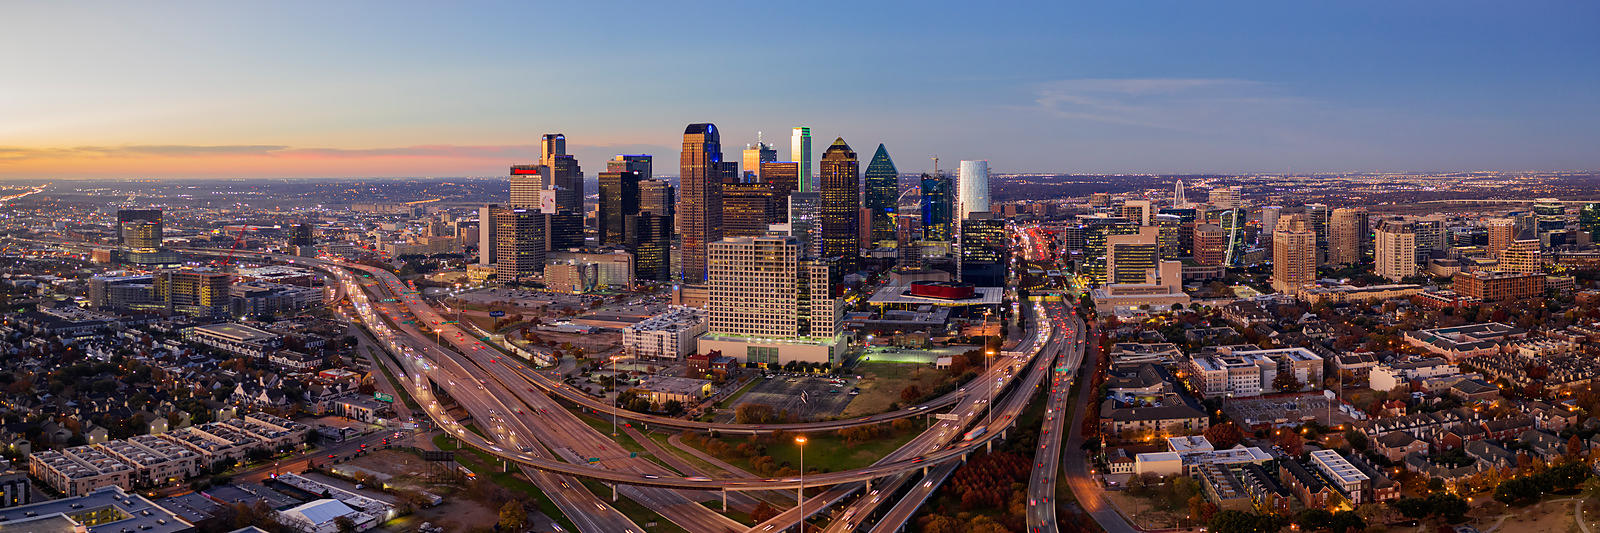 Elevated View of the Dallas Skyline at Dawn